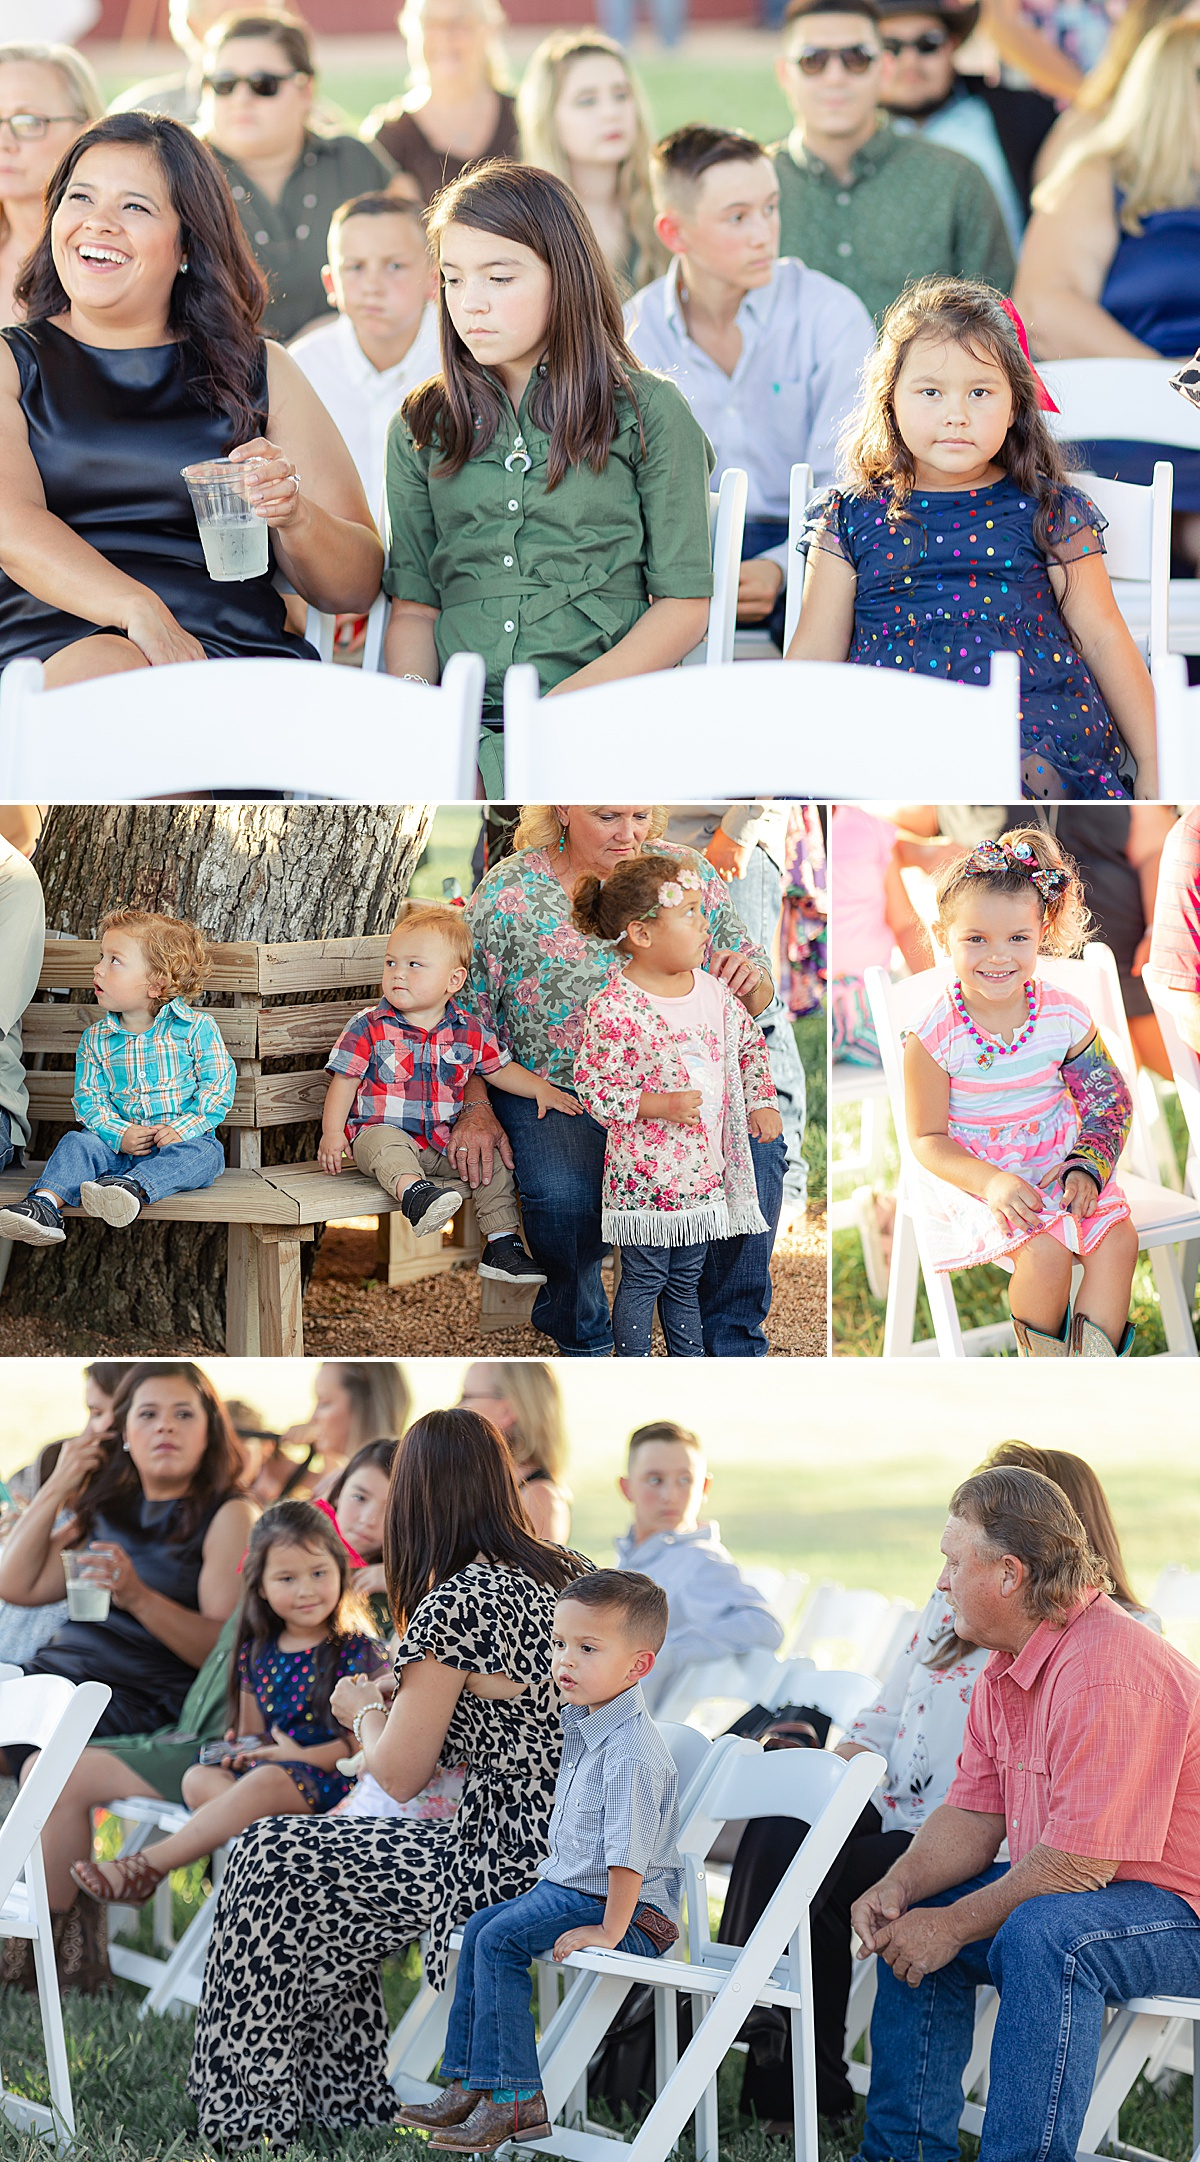 Rustic-Texas-Wedding-Hollow-Creek-Ranch-Carly-Barton-Photography_0104.jpg